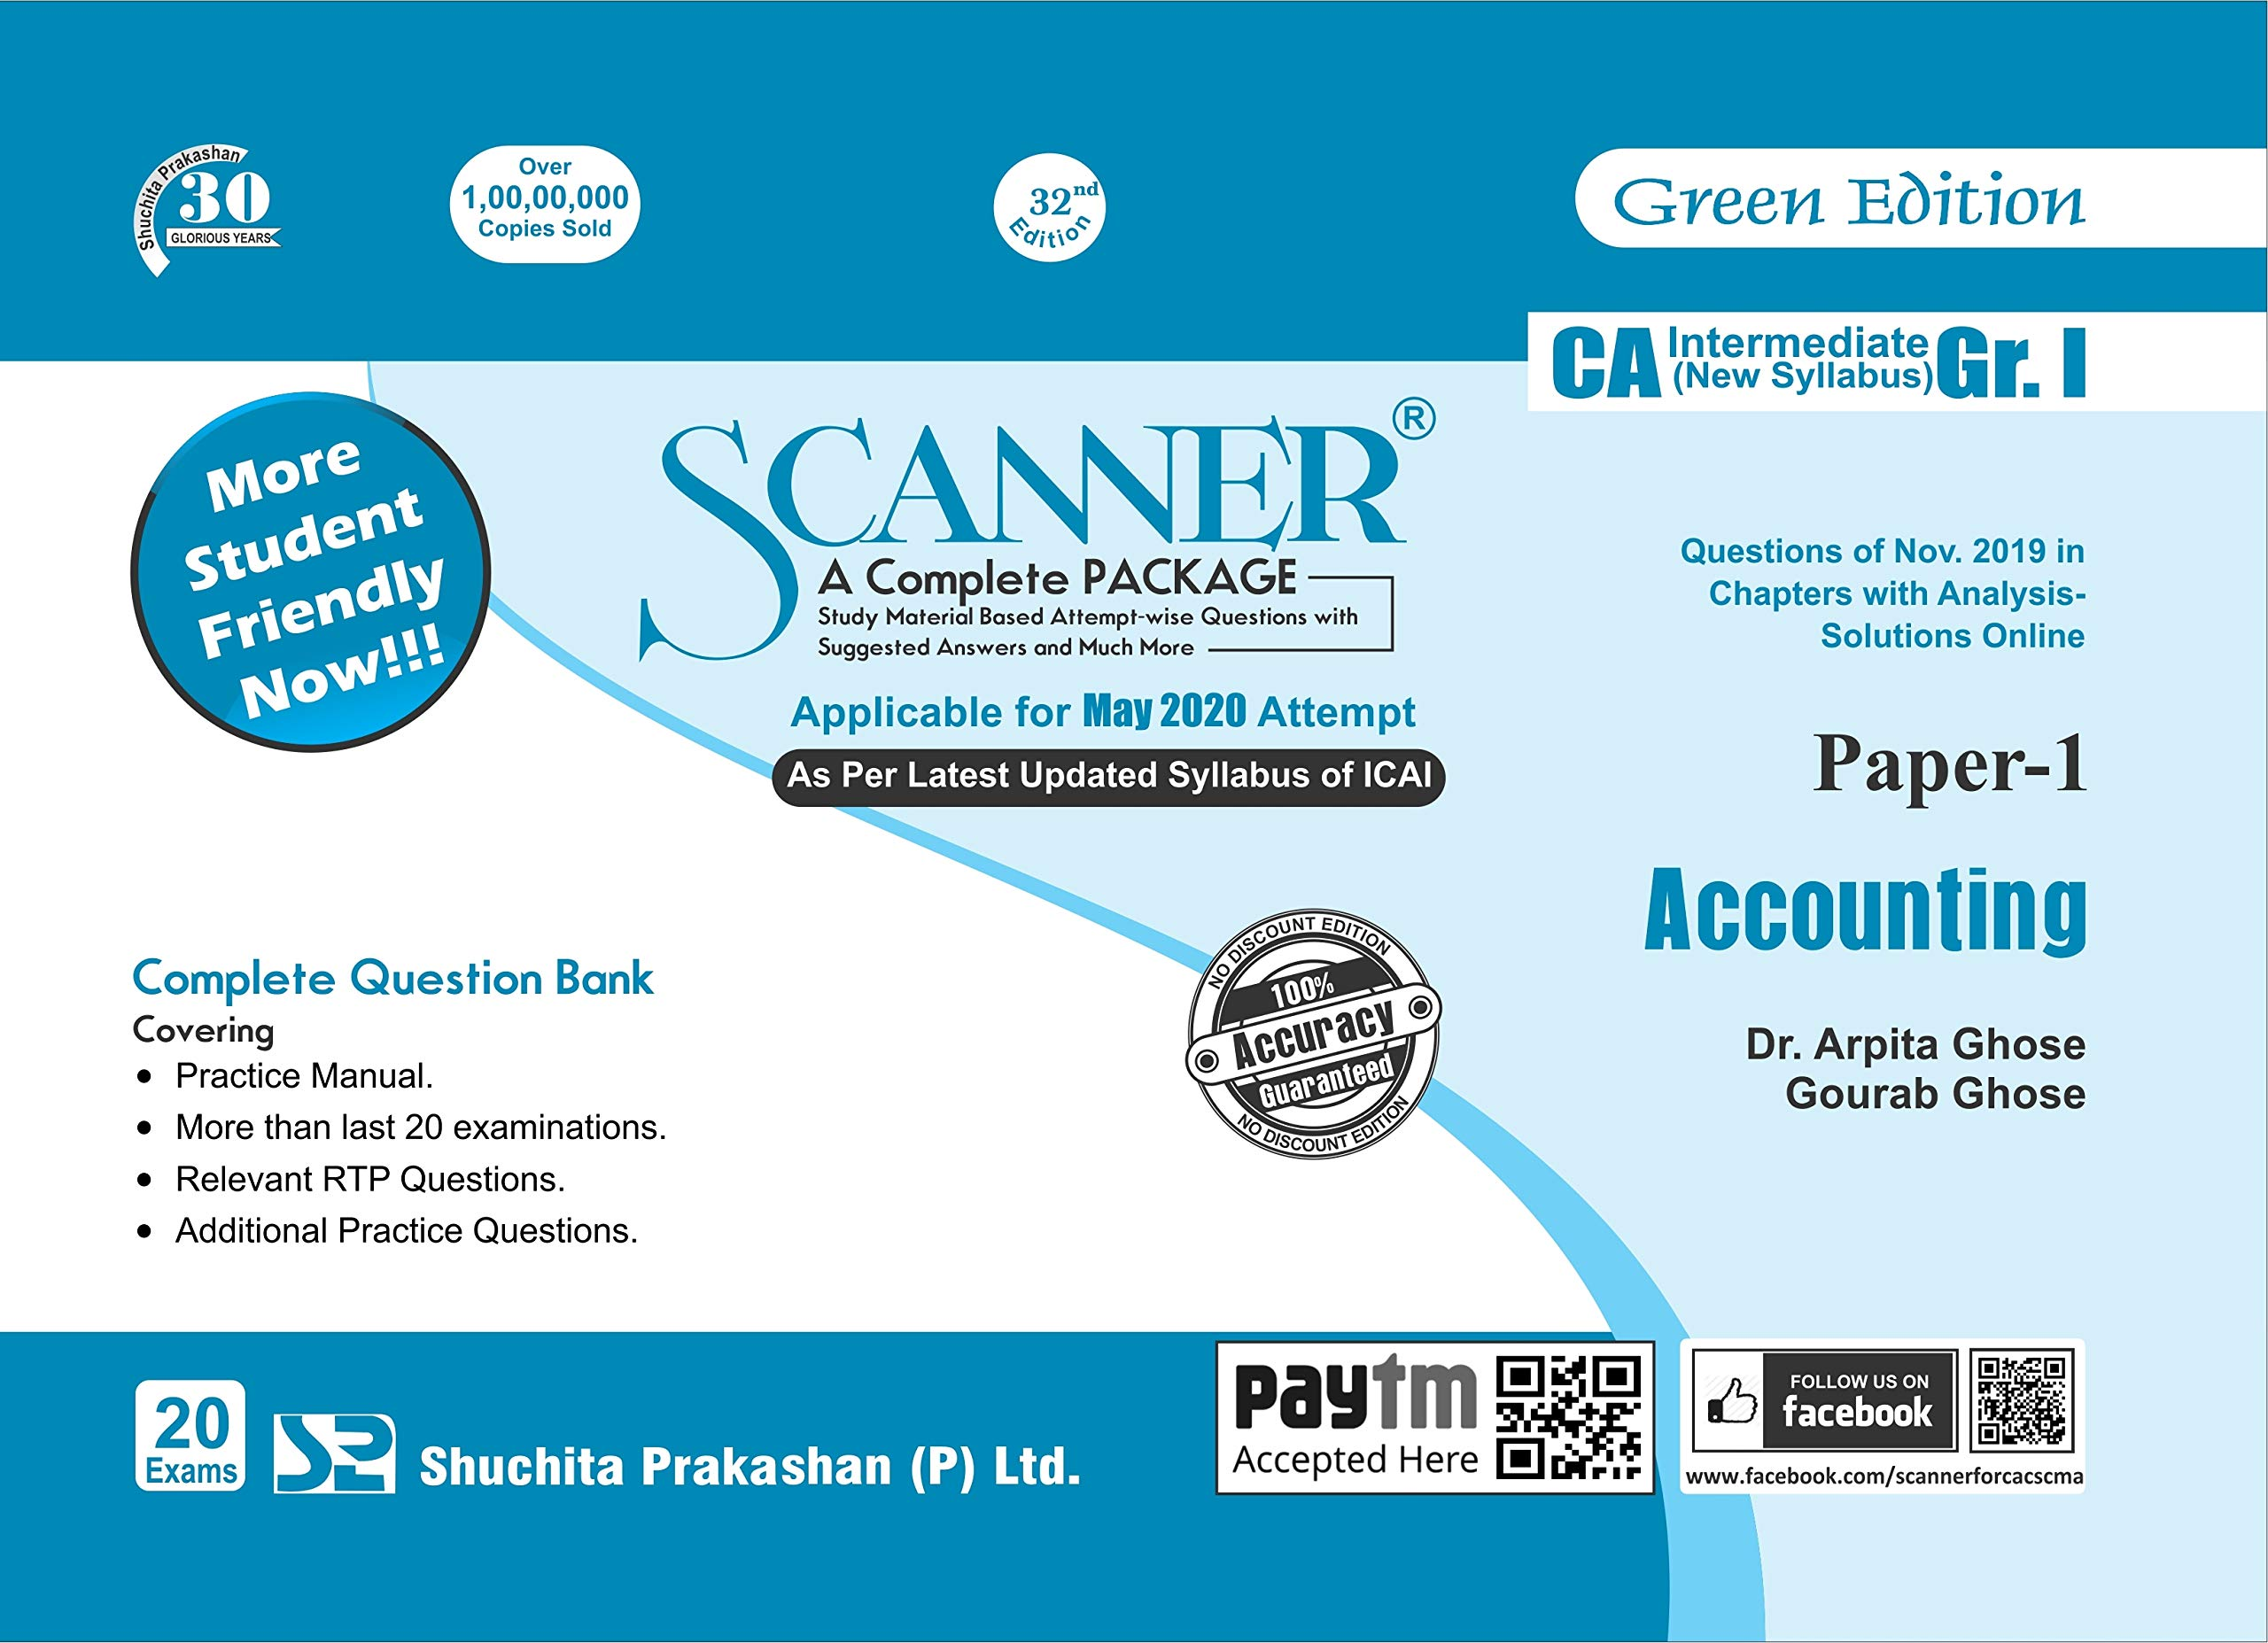 Shuchita Prakashan Solved Scanner CA Inter Group I (New Syllabus) Paper-1 Accounting By Dr.Arpita Ghose and Gourab Ghose Applicable for May 2020 Exam